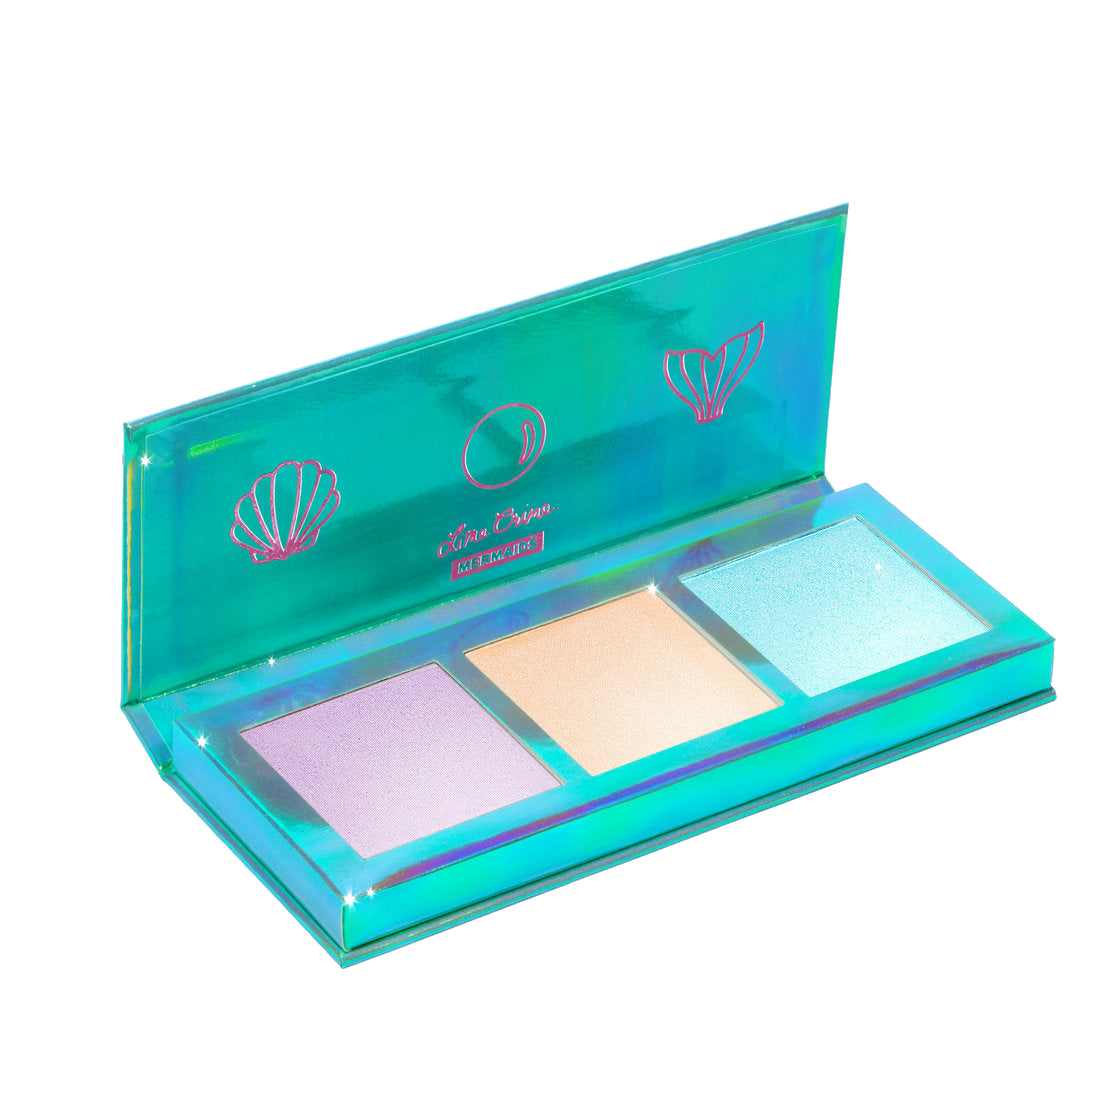 HI-LITE Mermaids -  Highlighter Powder